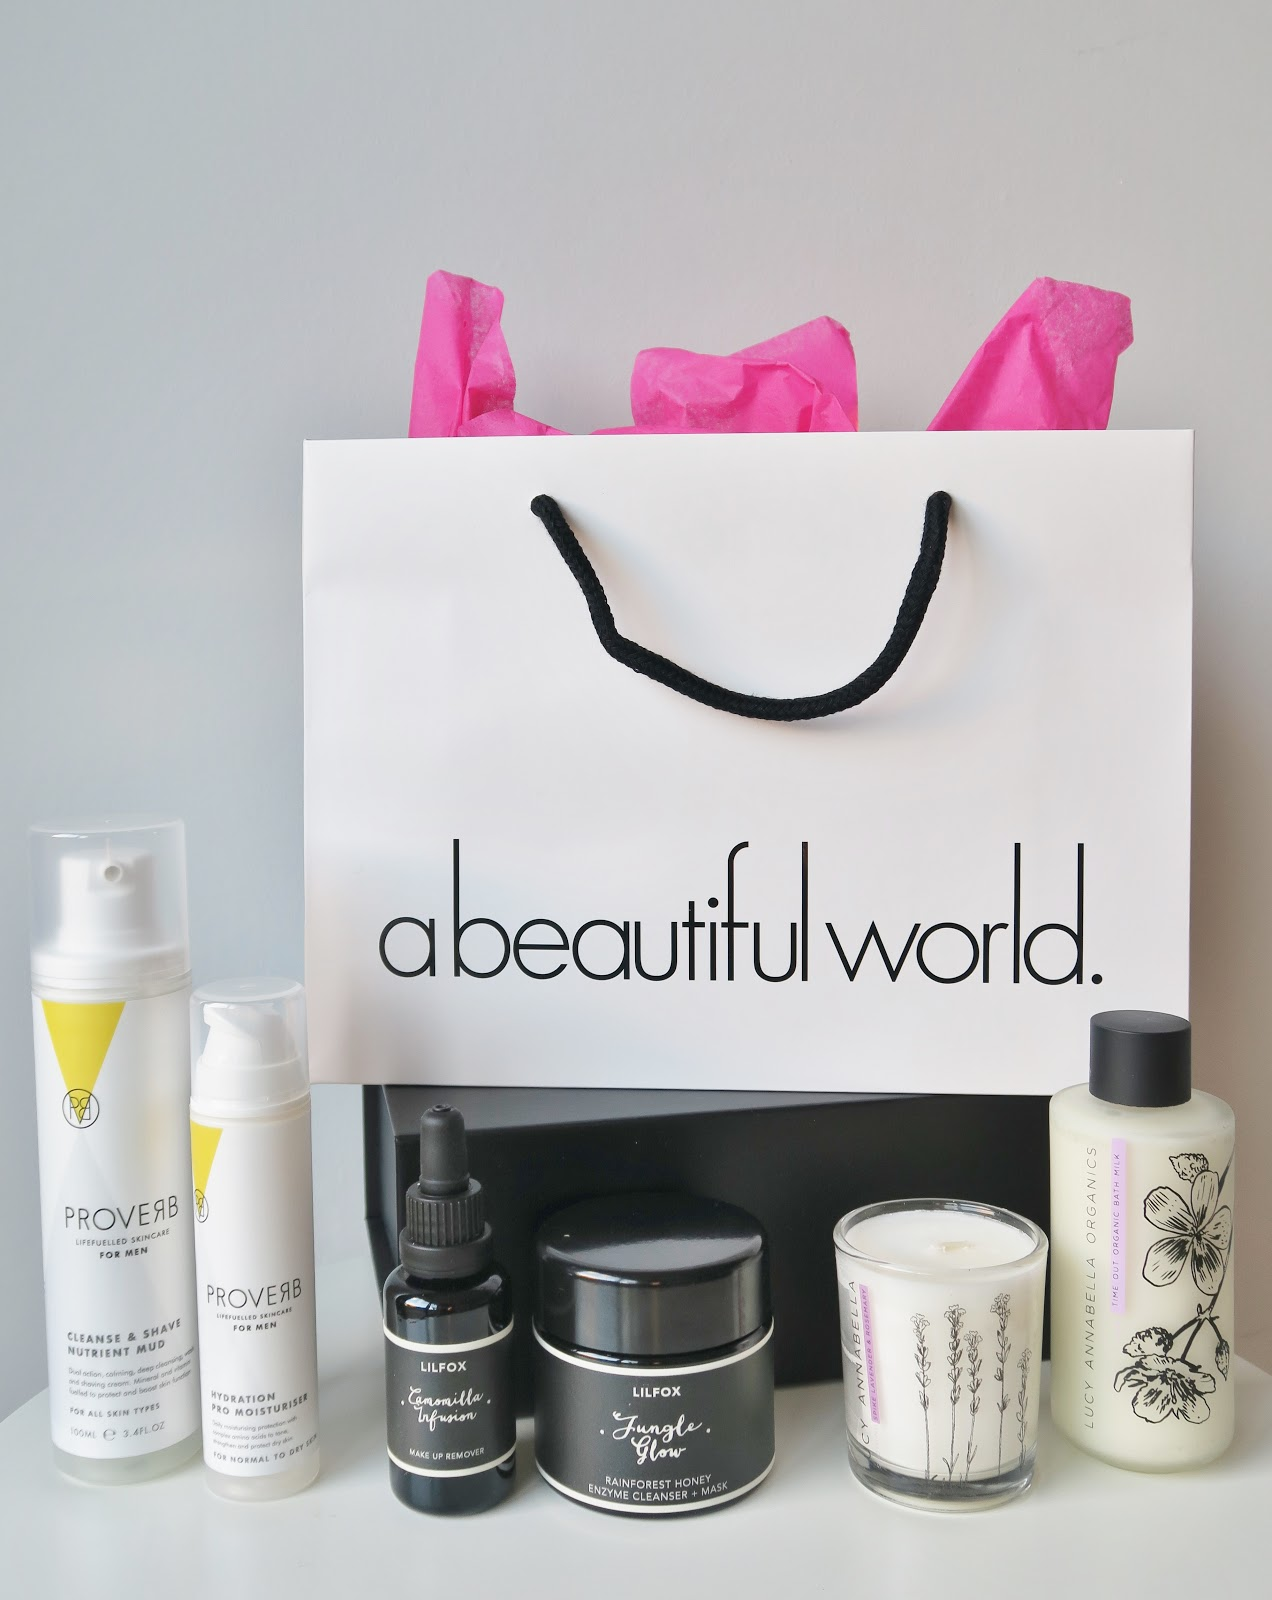 Winter Luxuries, new releases at abeautifulworld   Luxury online natural and organic performance skincare